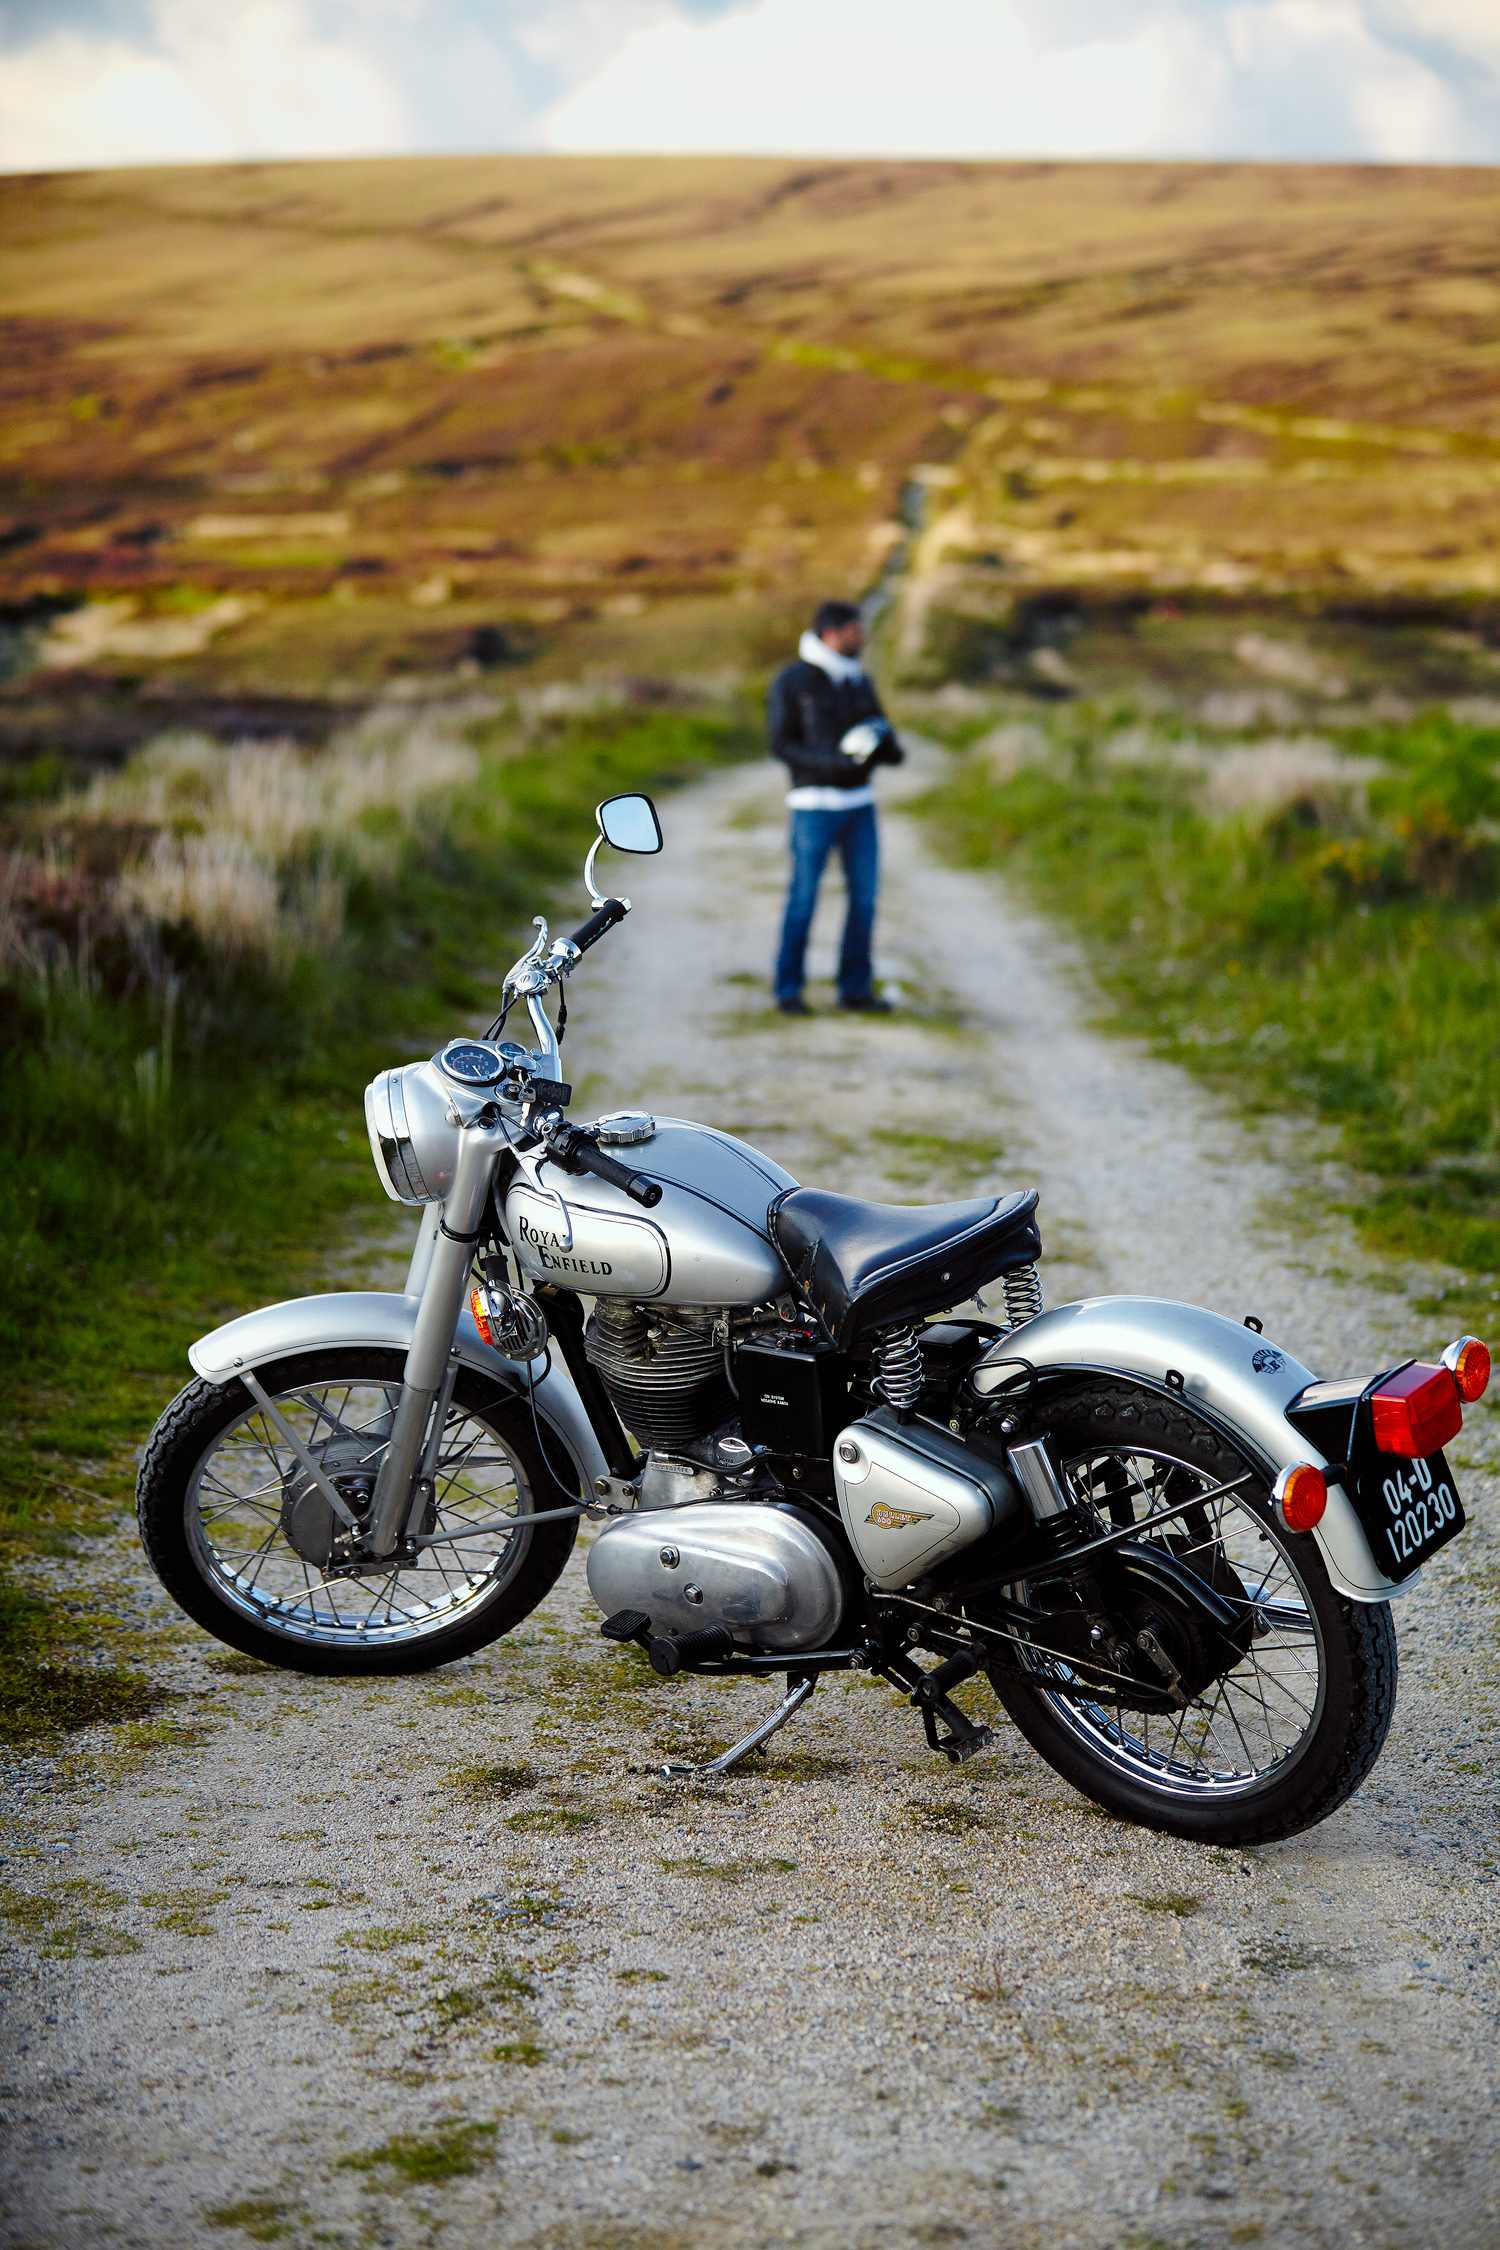 Royal_Enfield_9